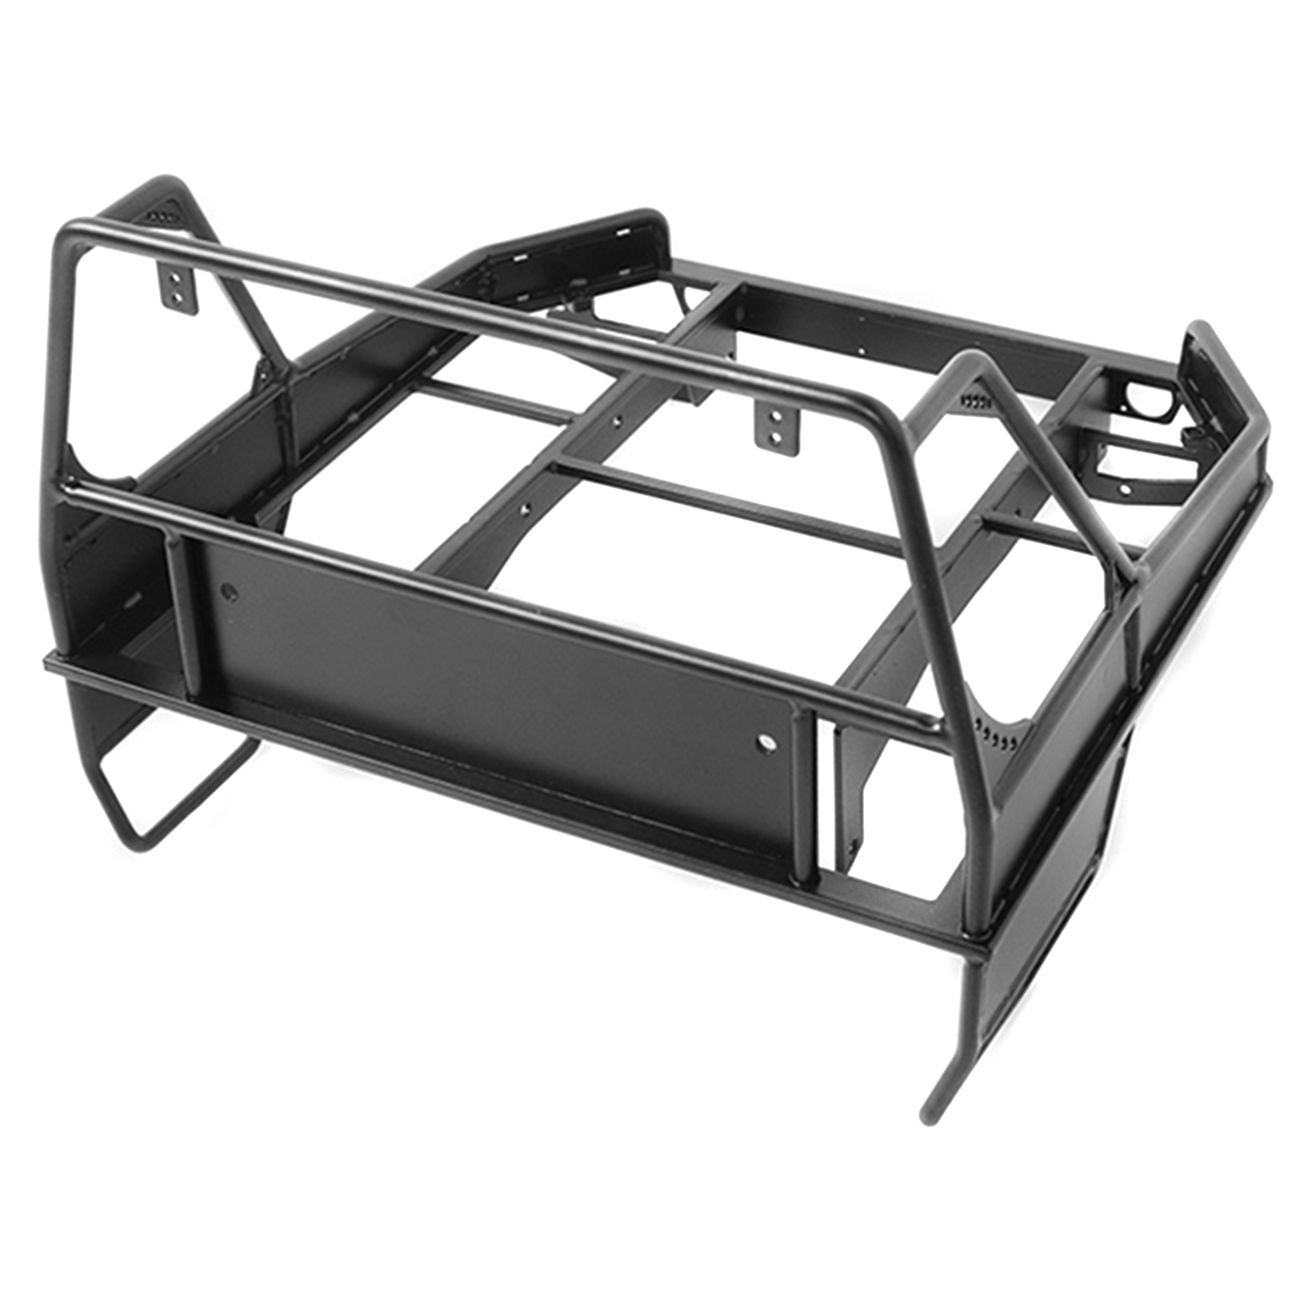 RC4WD Rear Tube Bed For Trail Finder 2 w/Mud Flaps (Black) VVV-C0253 1